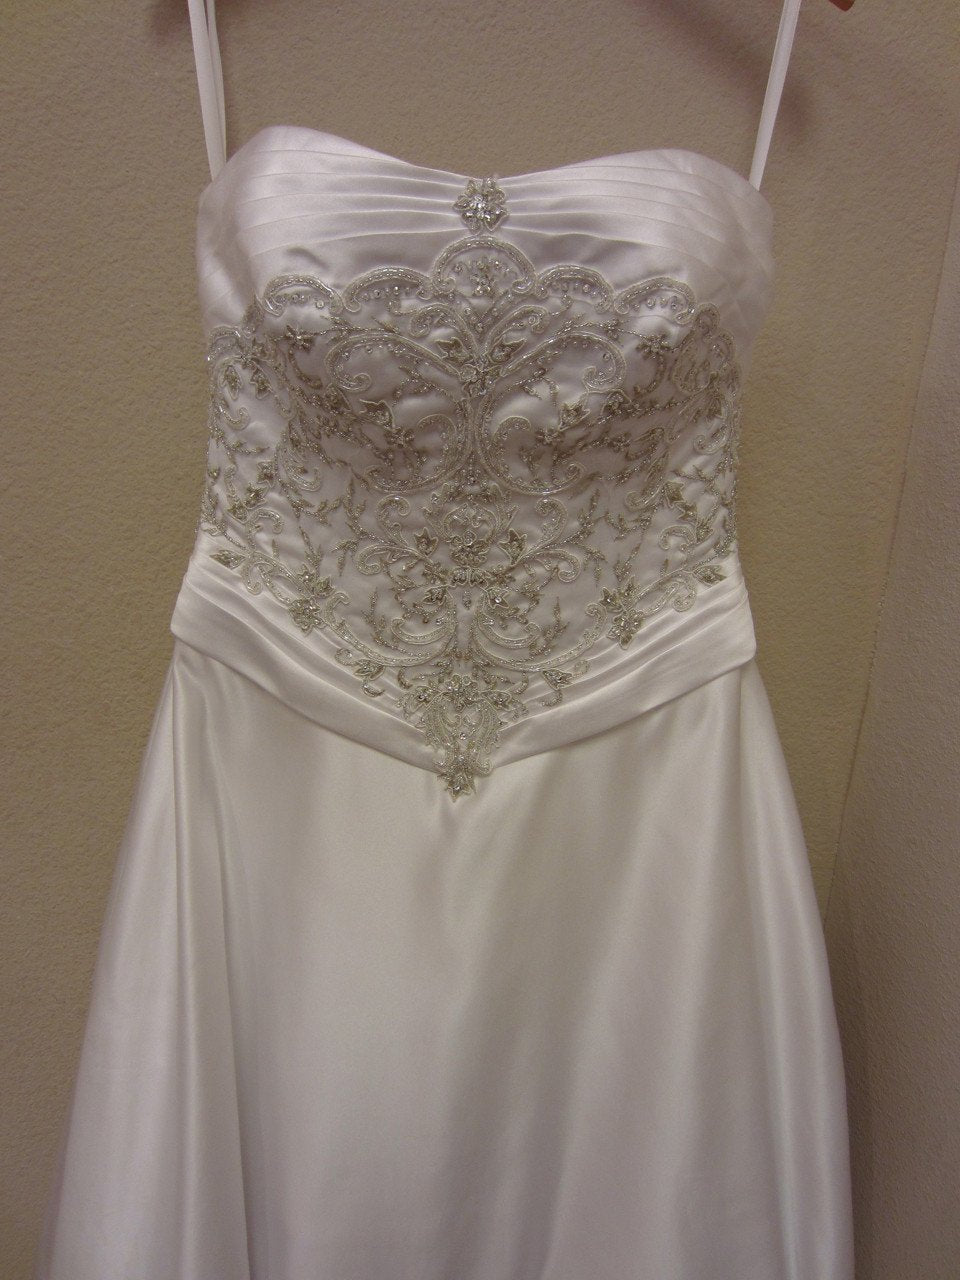 Allure 1961 White/Silver size 10 In Stock Wedding Dress